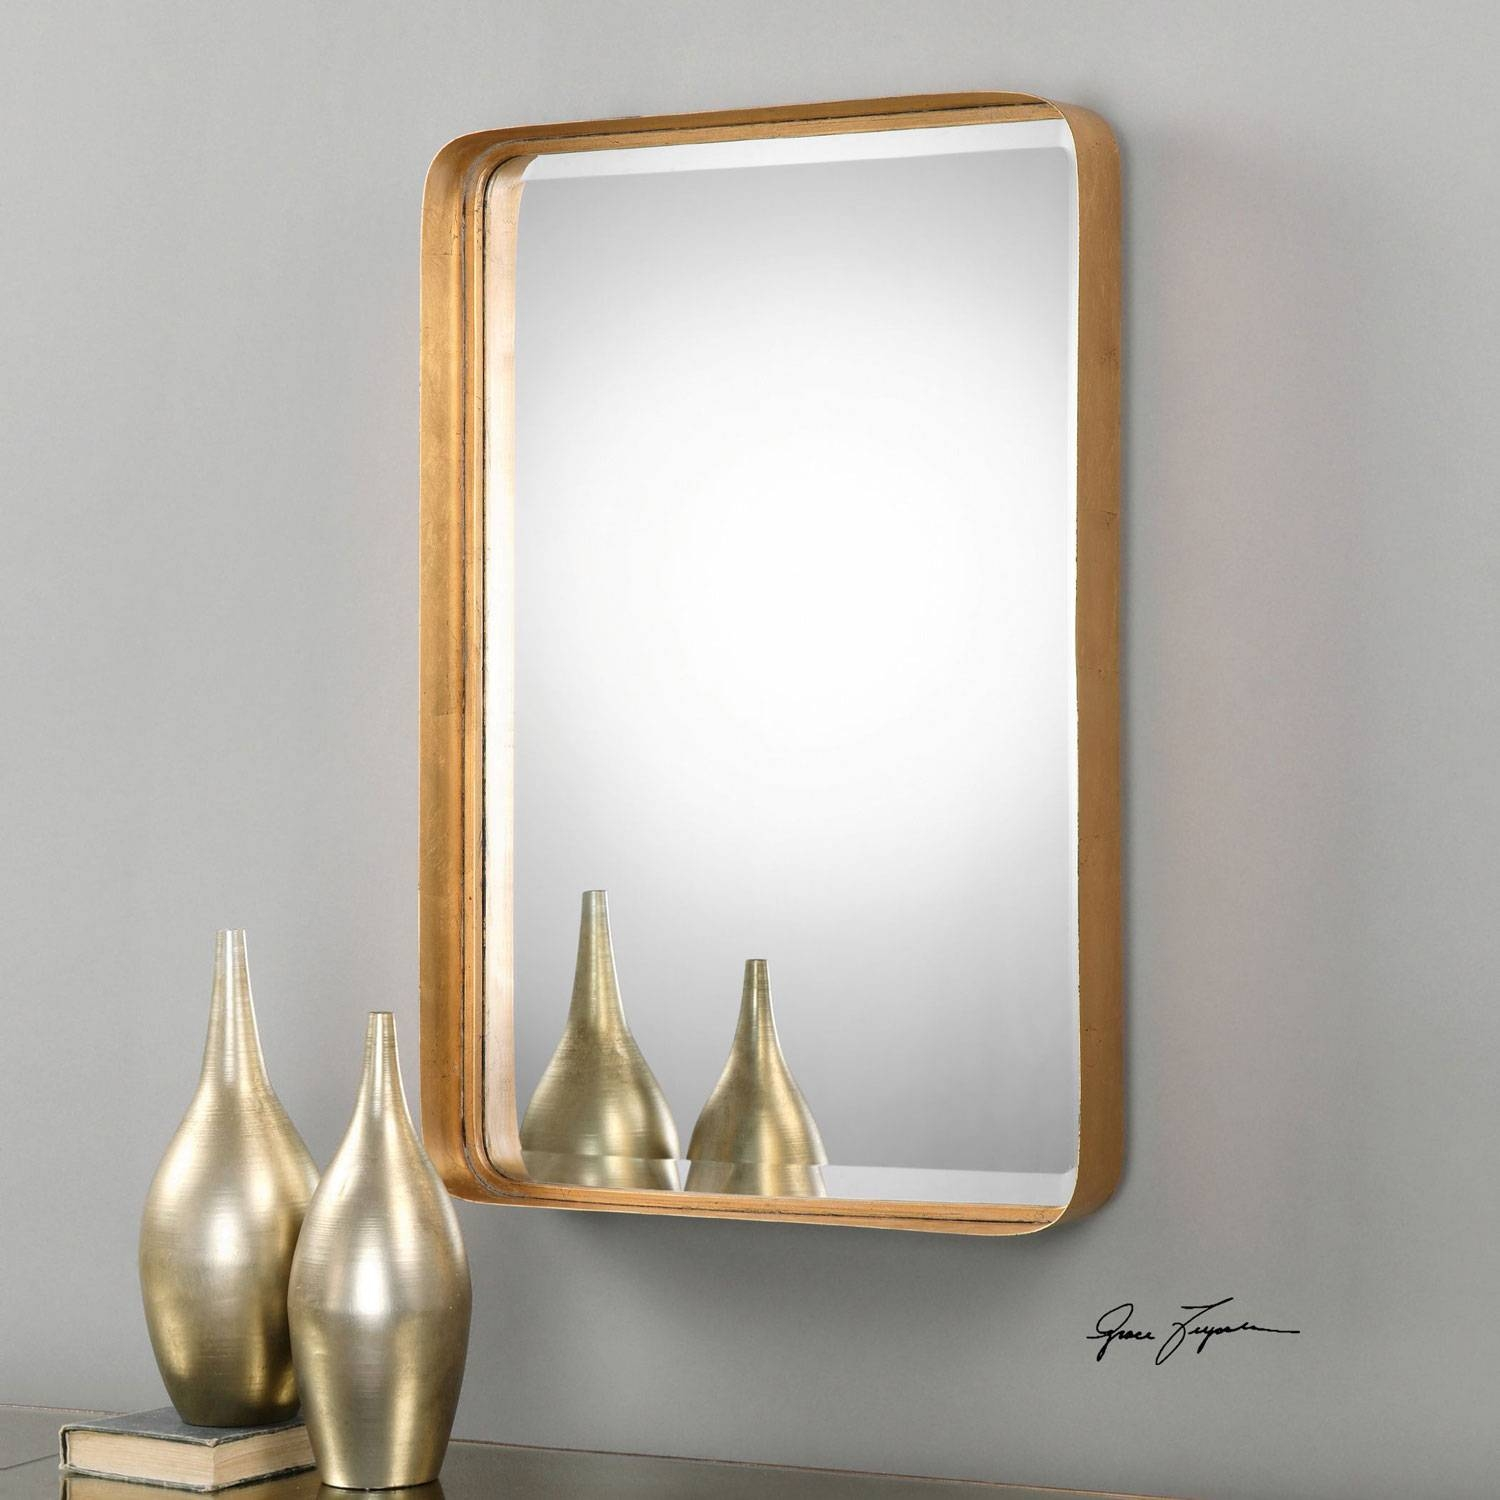 Crofton Antique Gold Mirror Uttermost Wall Mirror Mirrors Home Decor within Antique Gold Mirrors (Image 10 of 25)